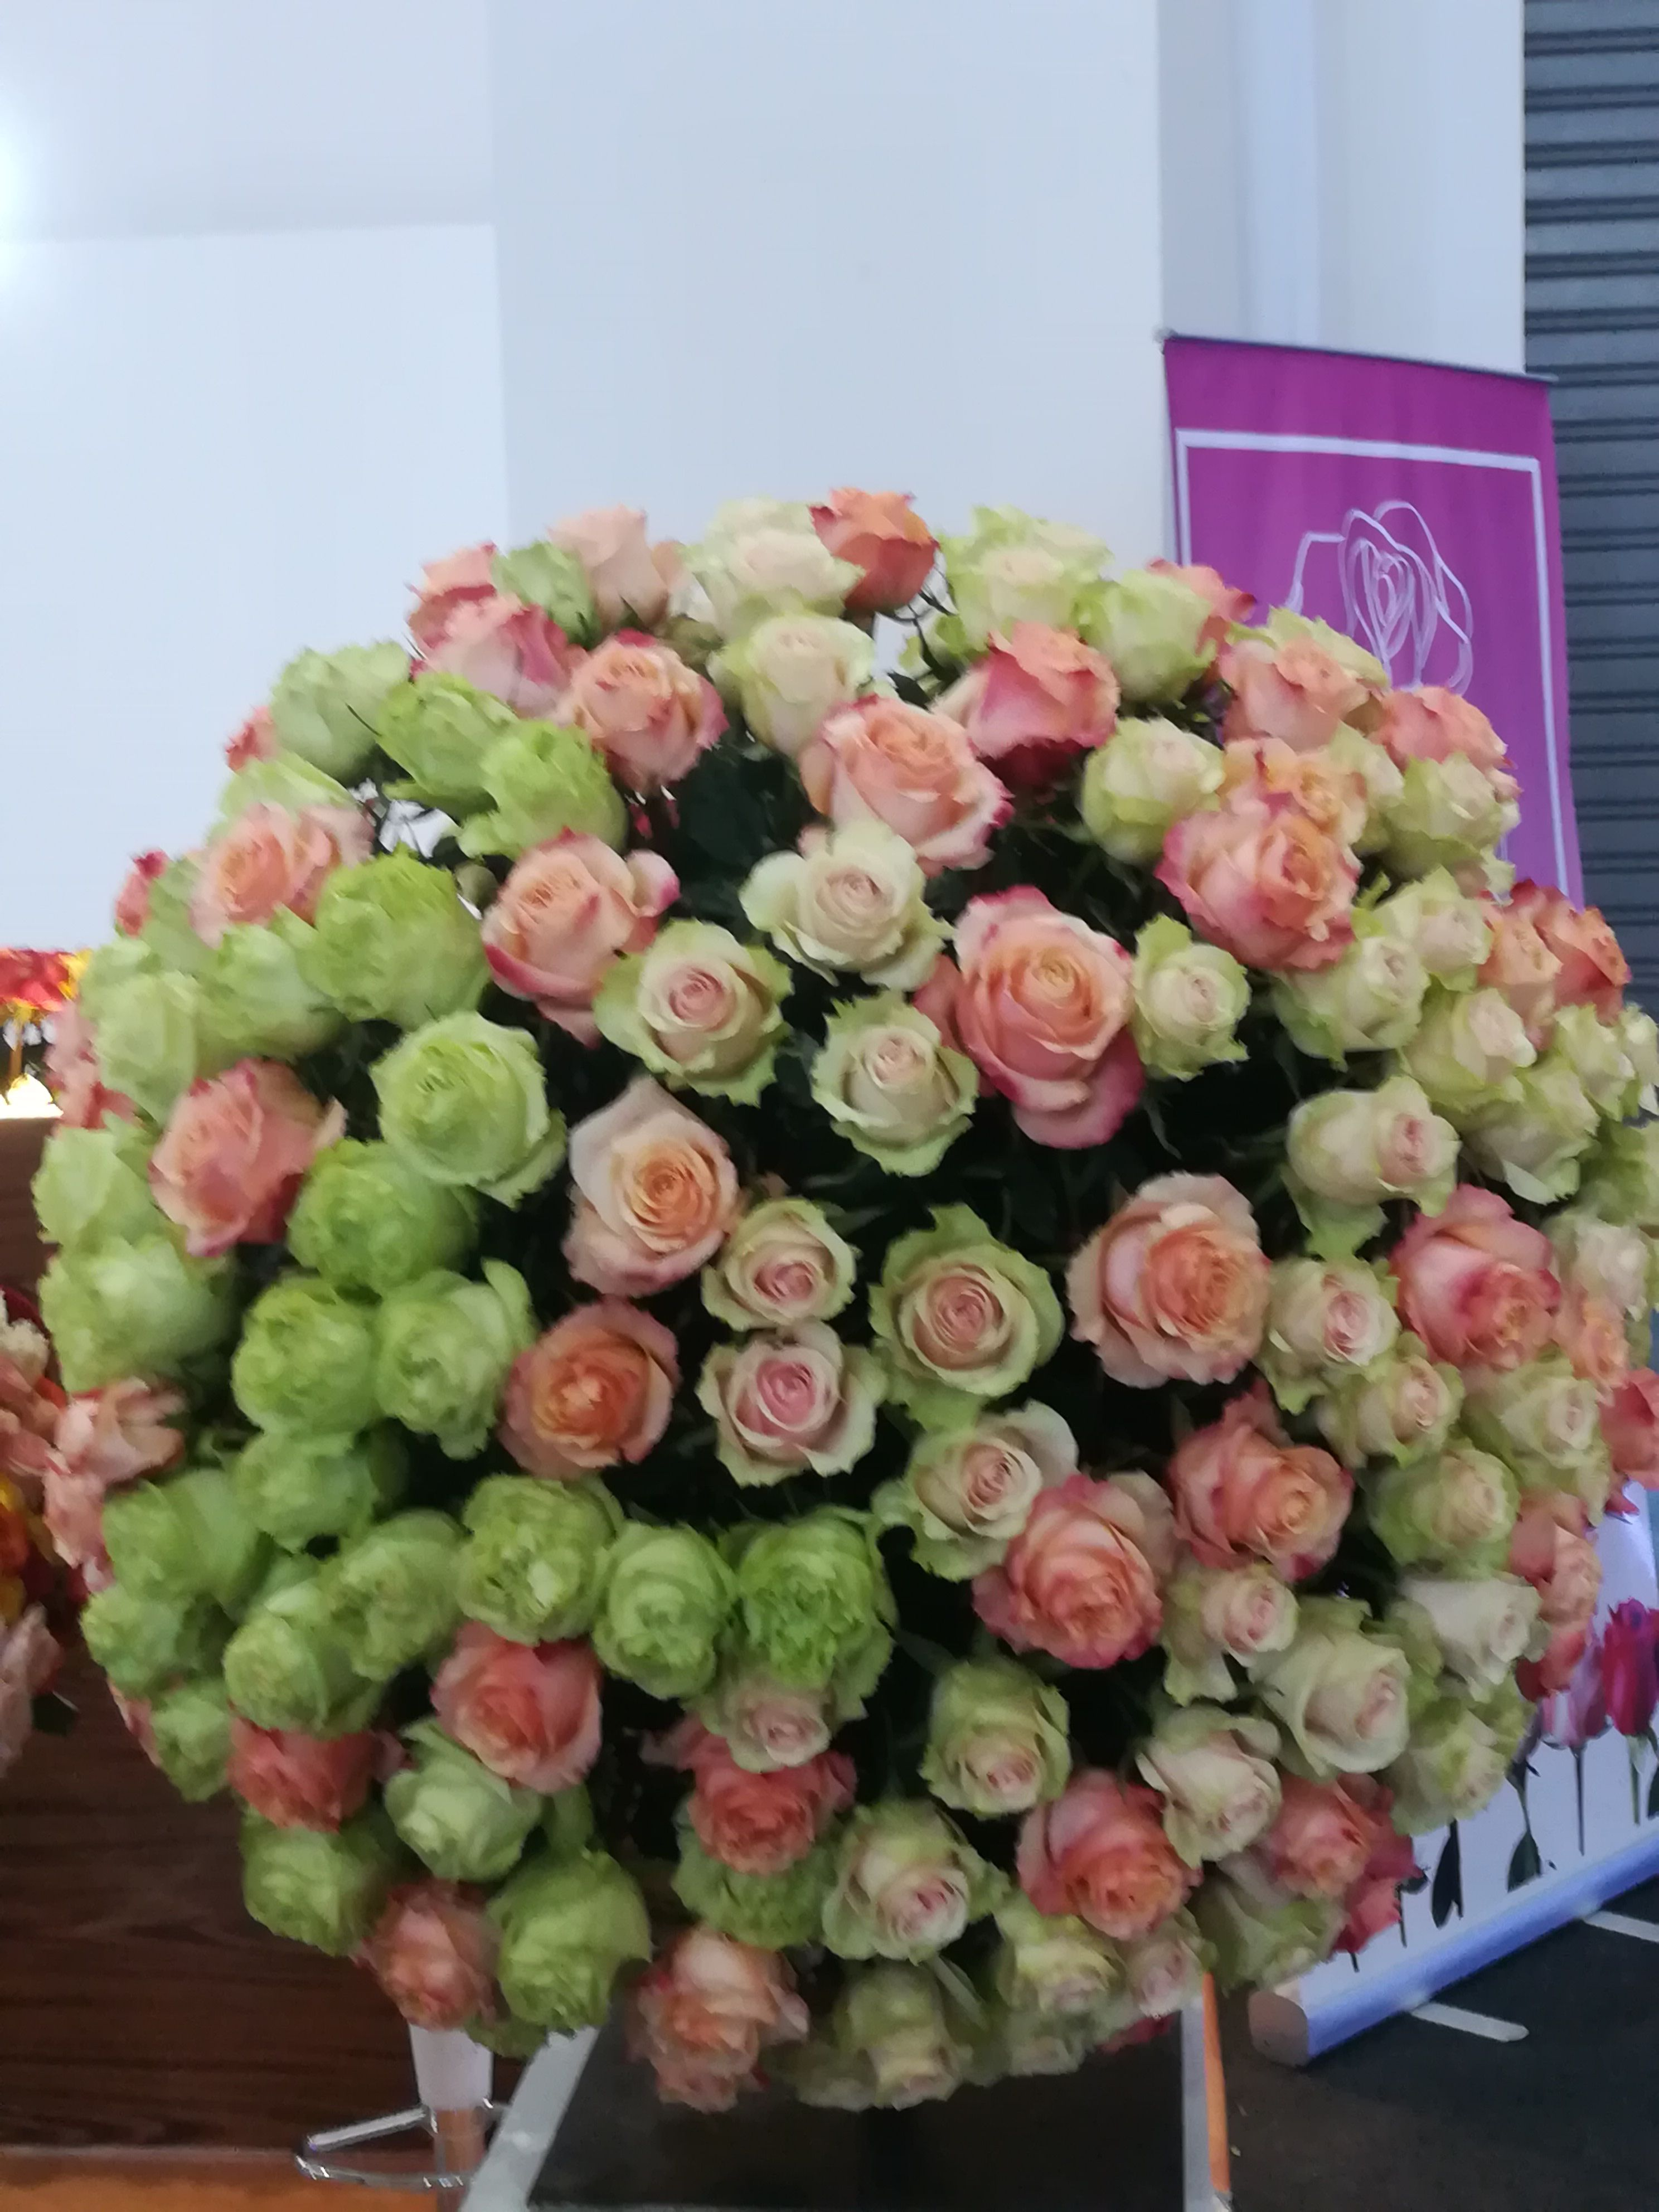 Where to buy bulk flowers online for your wedding roses flowers where to buy bulk flowers online for your wedding roses flowers peonies izmirmasajfo